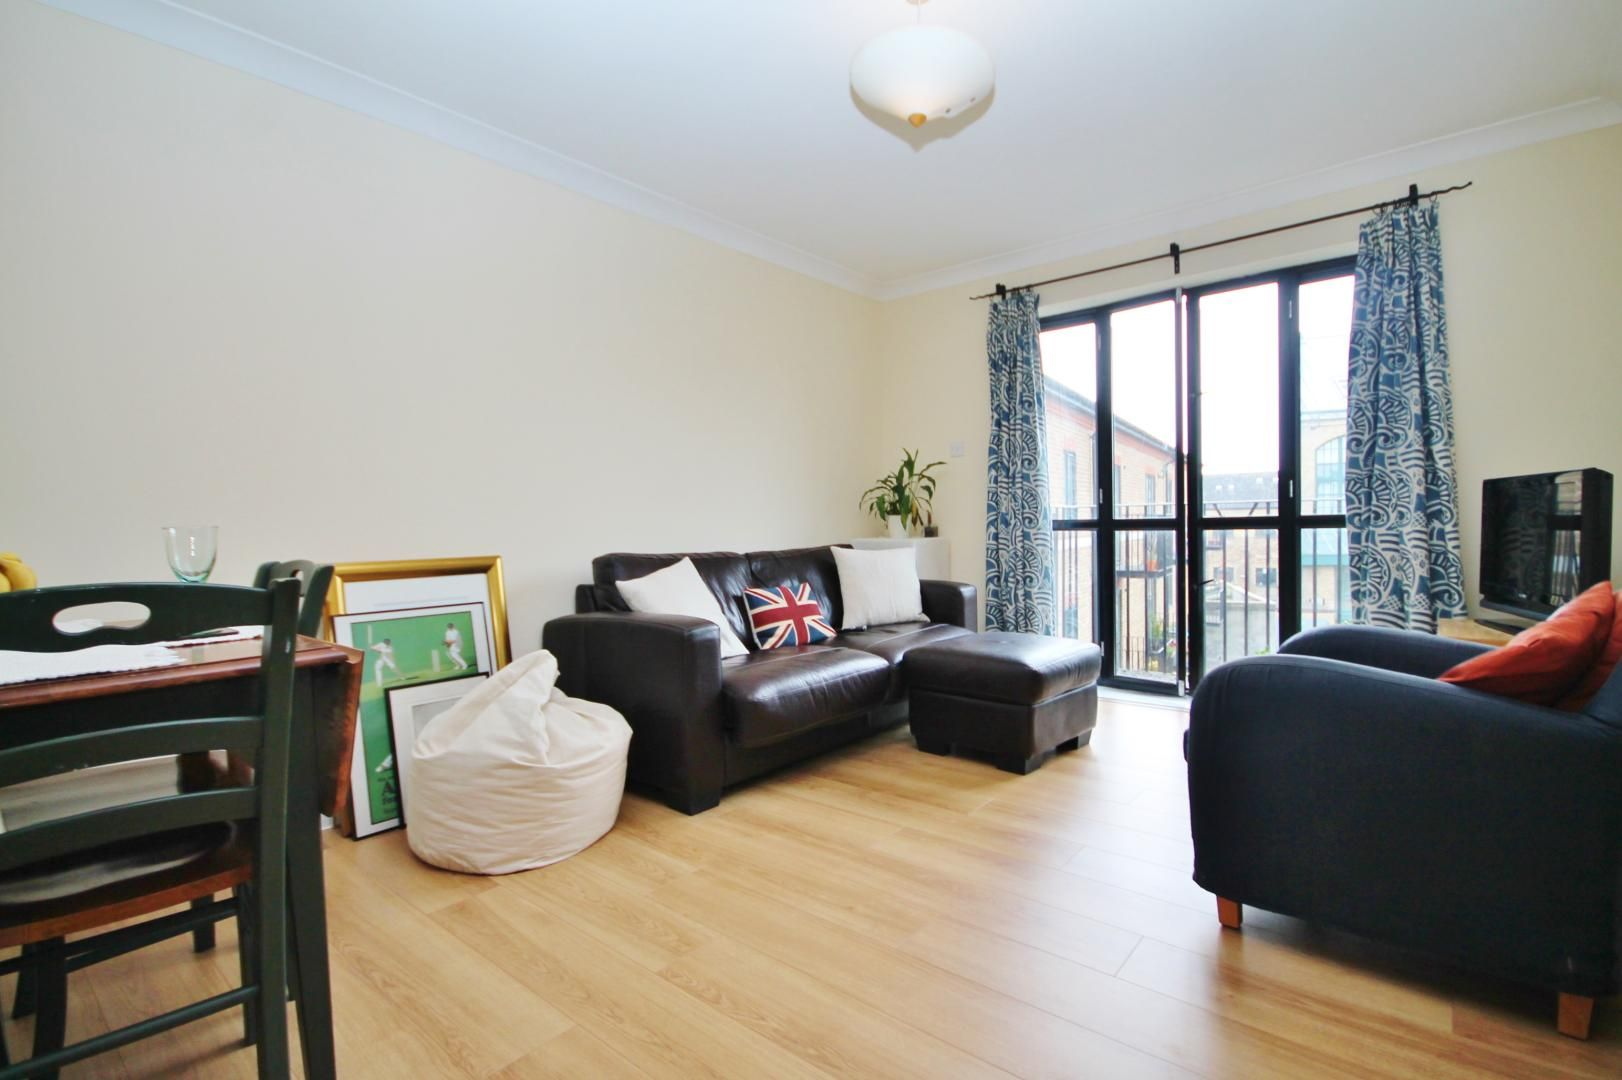 1 bed flat to rent in Ship Yard, E14